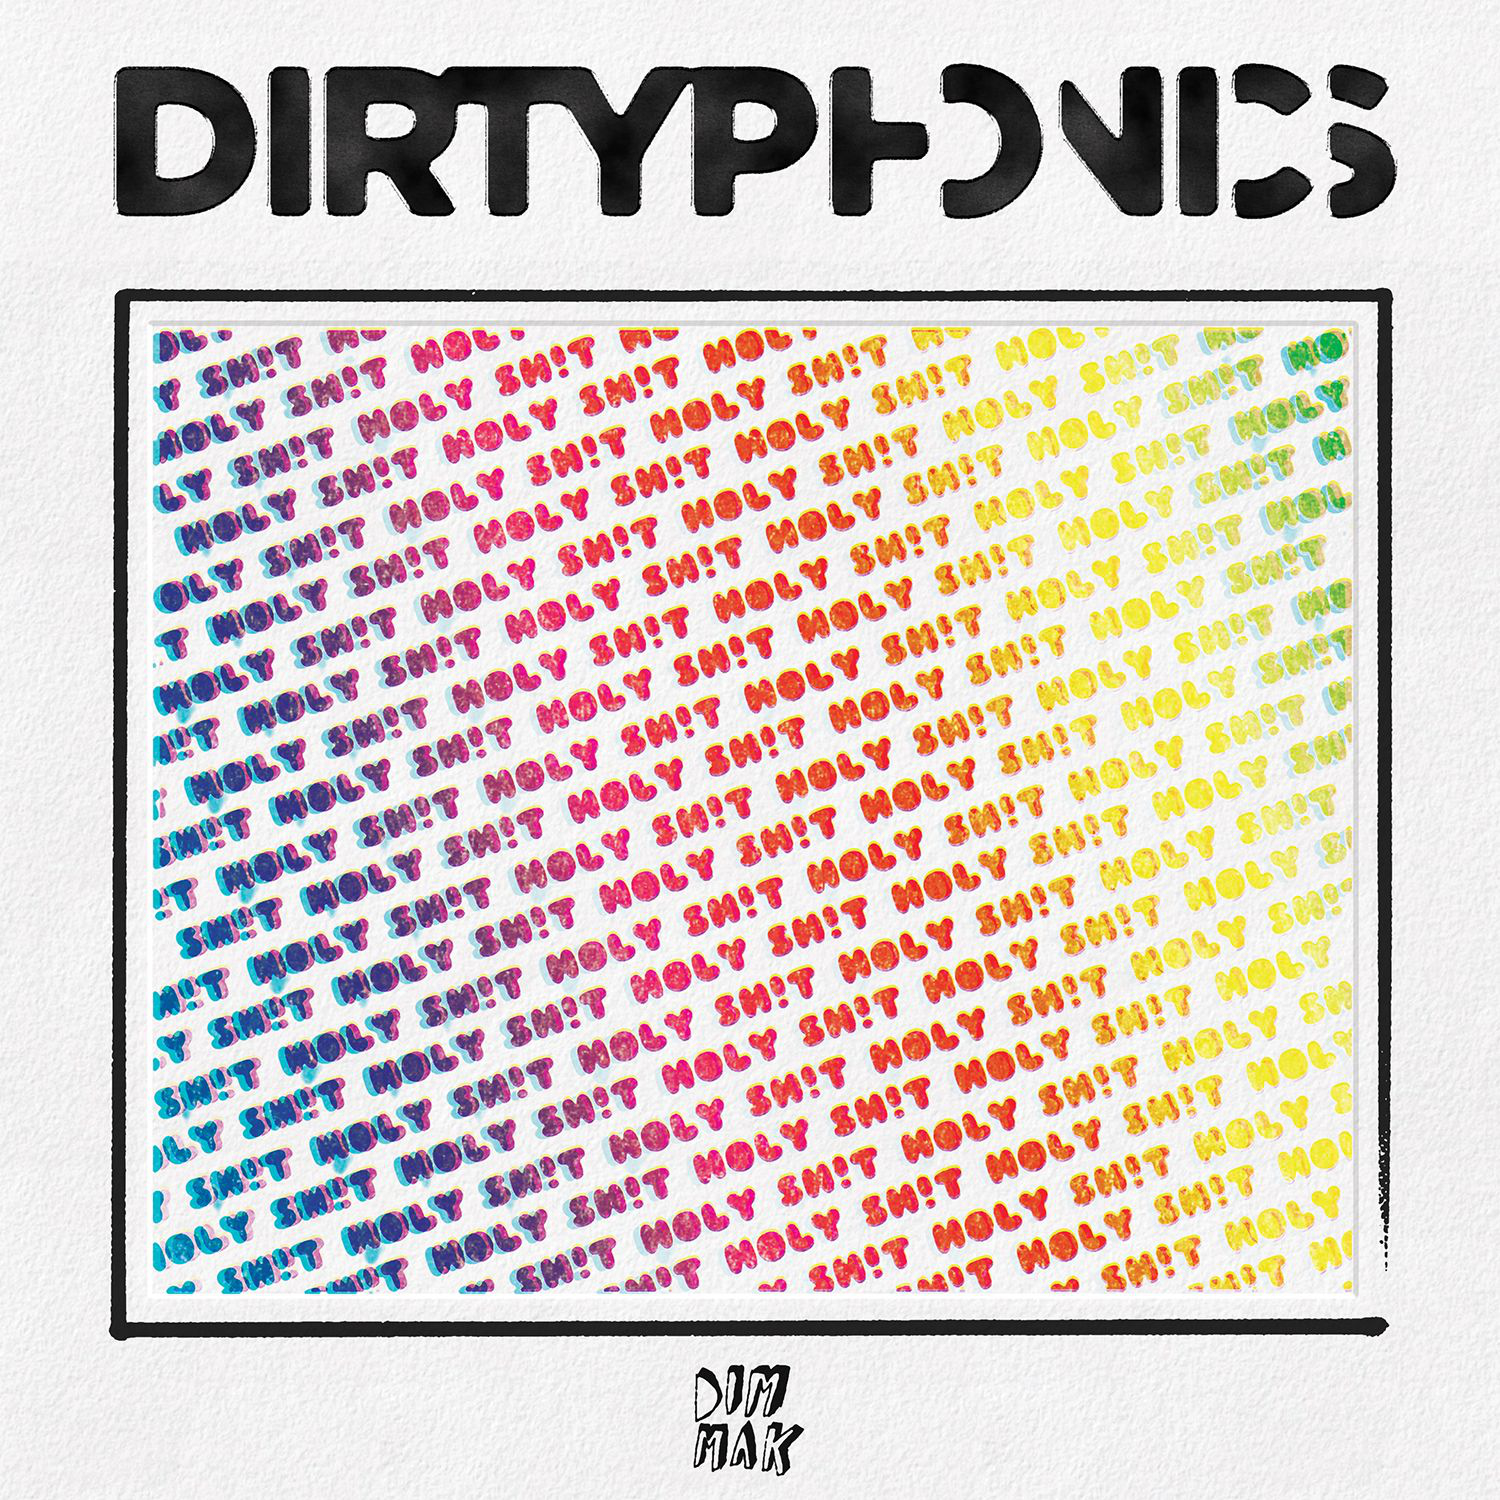 Dirtyphonics - Holy Sh!t - Single Cover